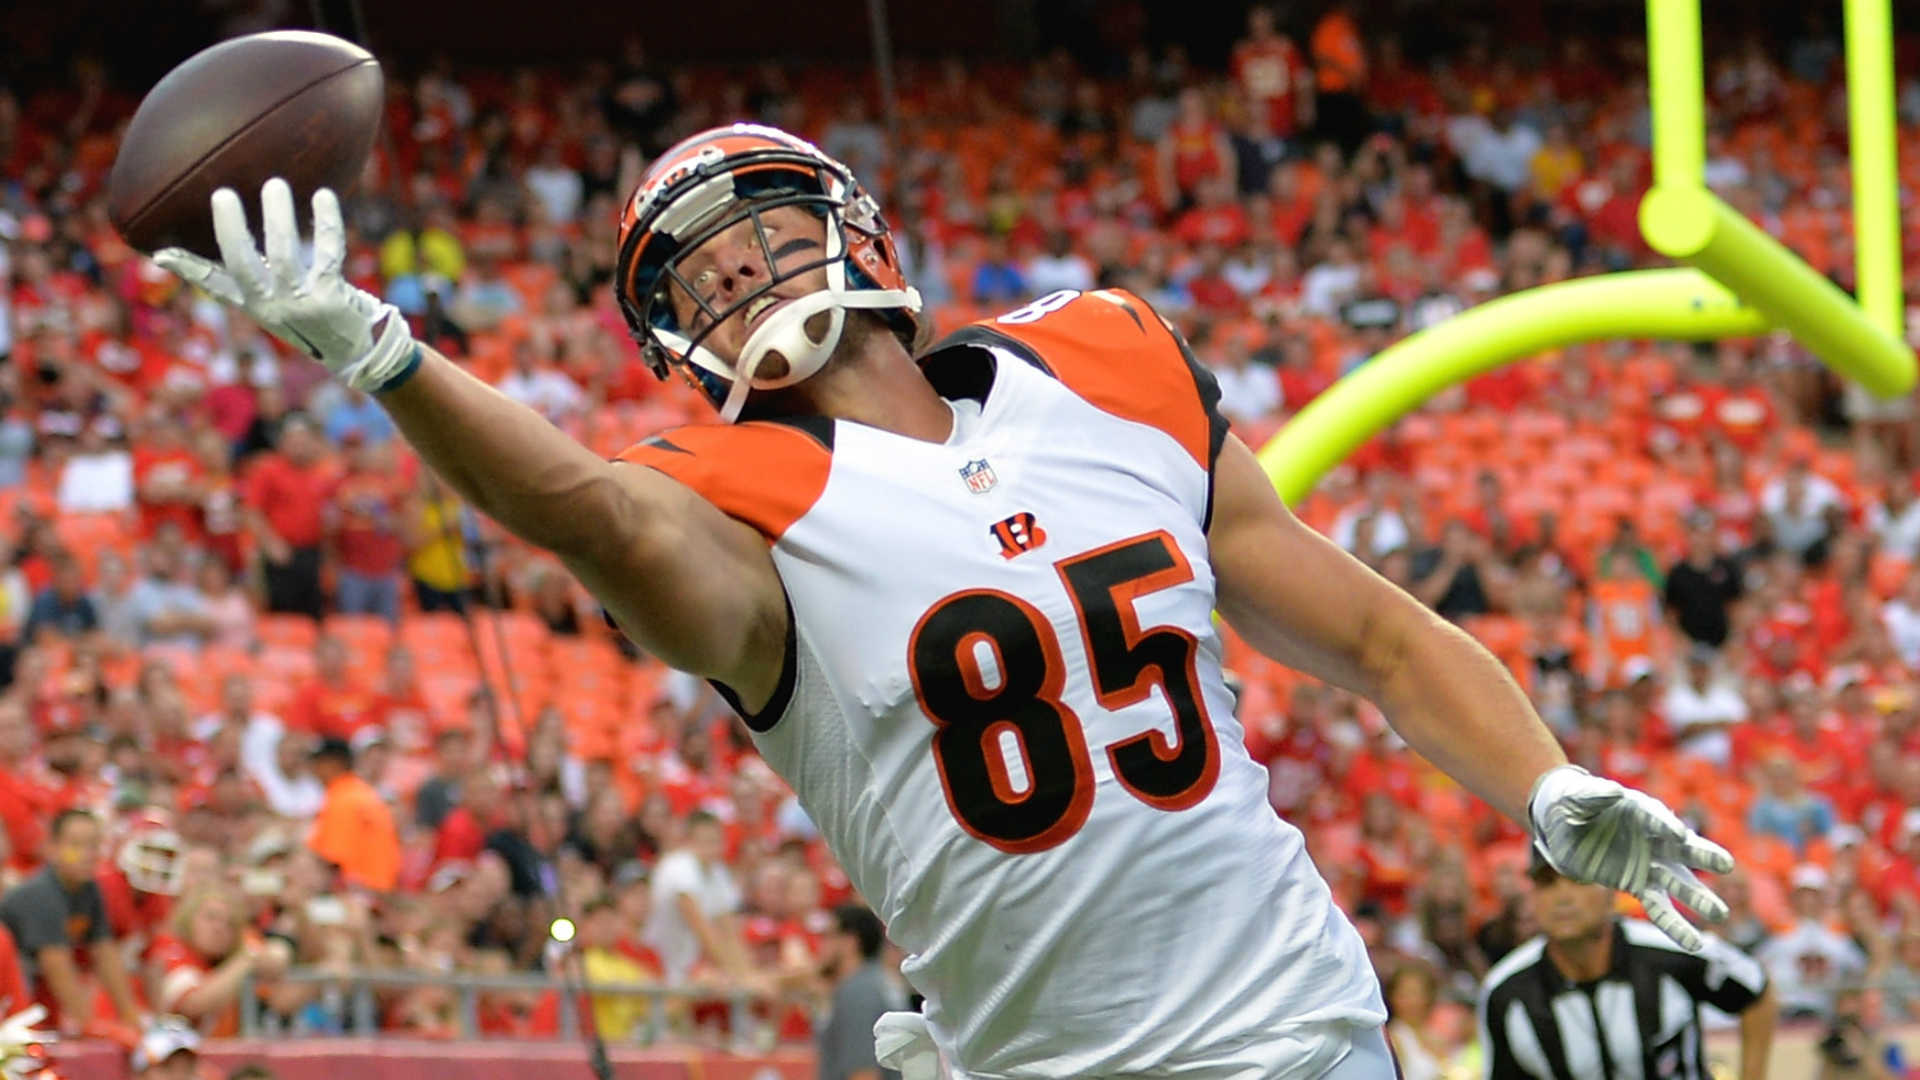 Bengals Tyler Eifert another athletic freak will keep